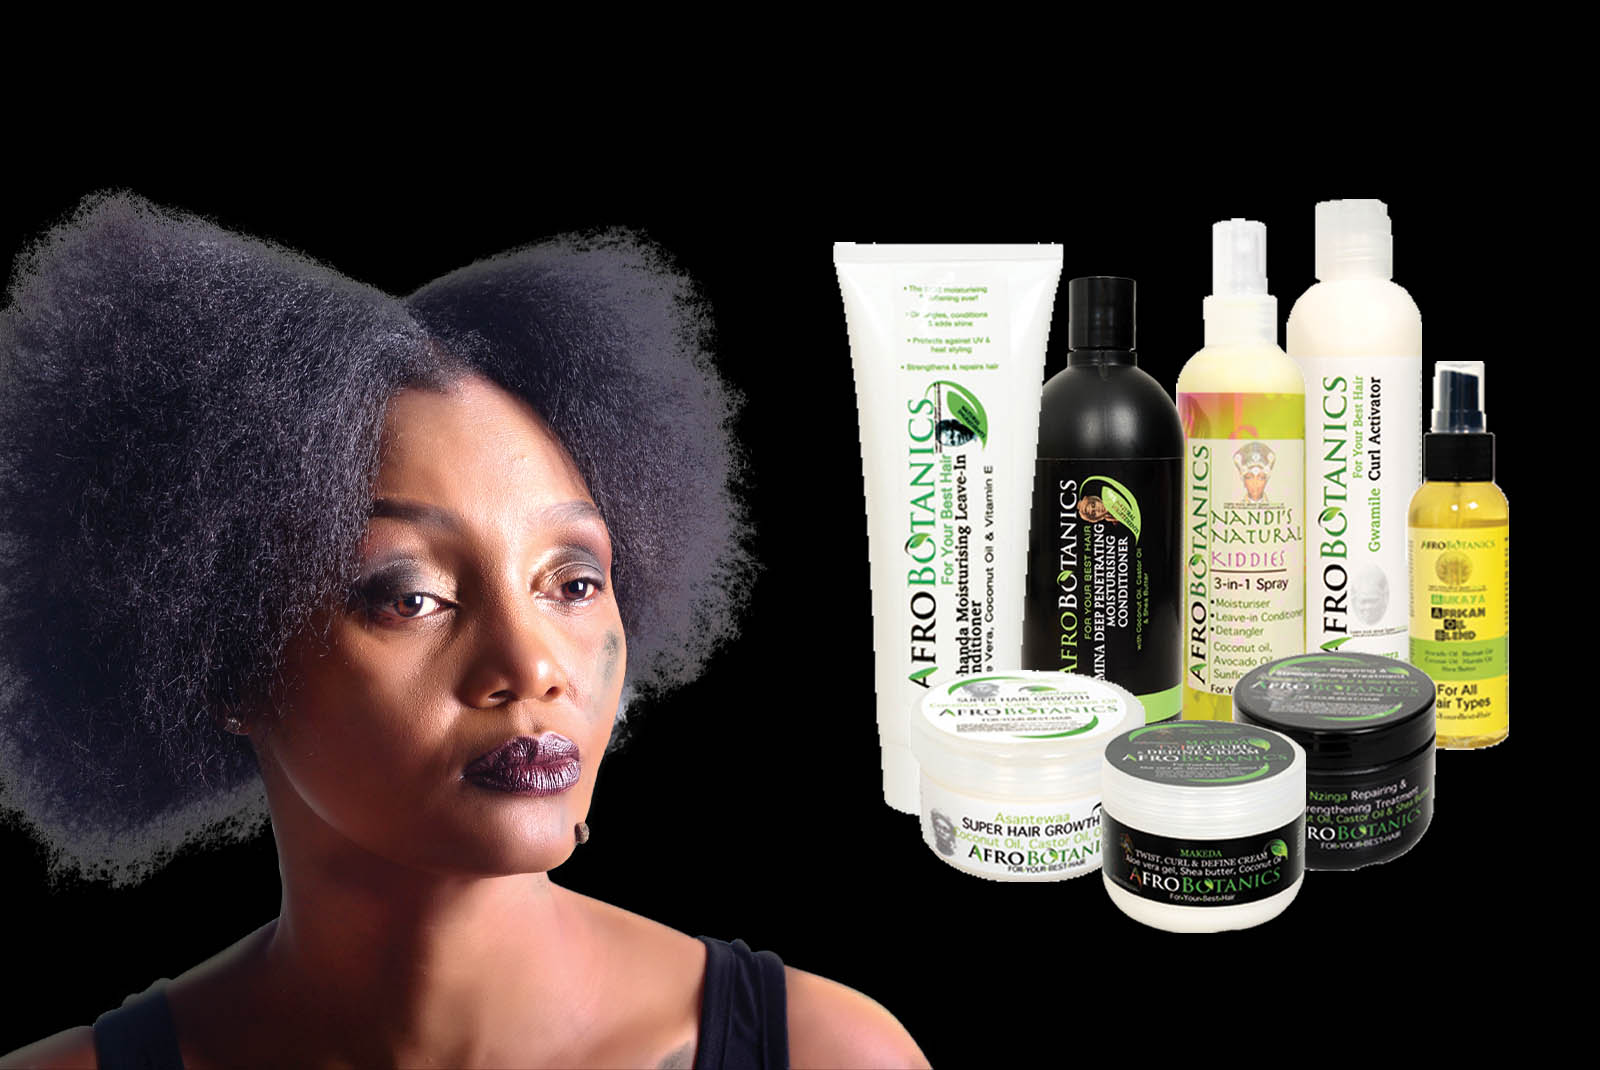 Afro Botanics My Own Kind Of Beautiful